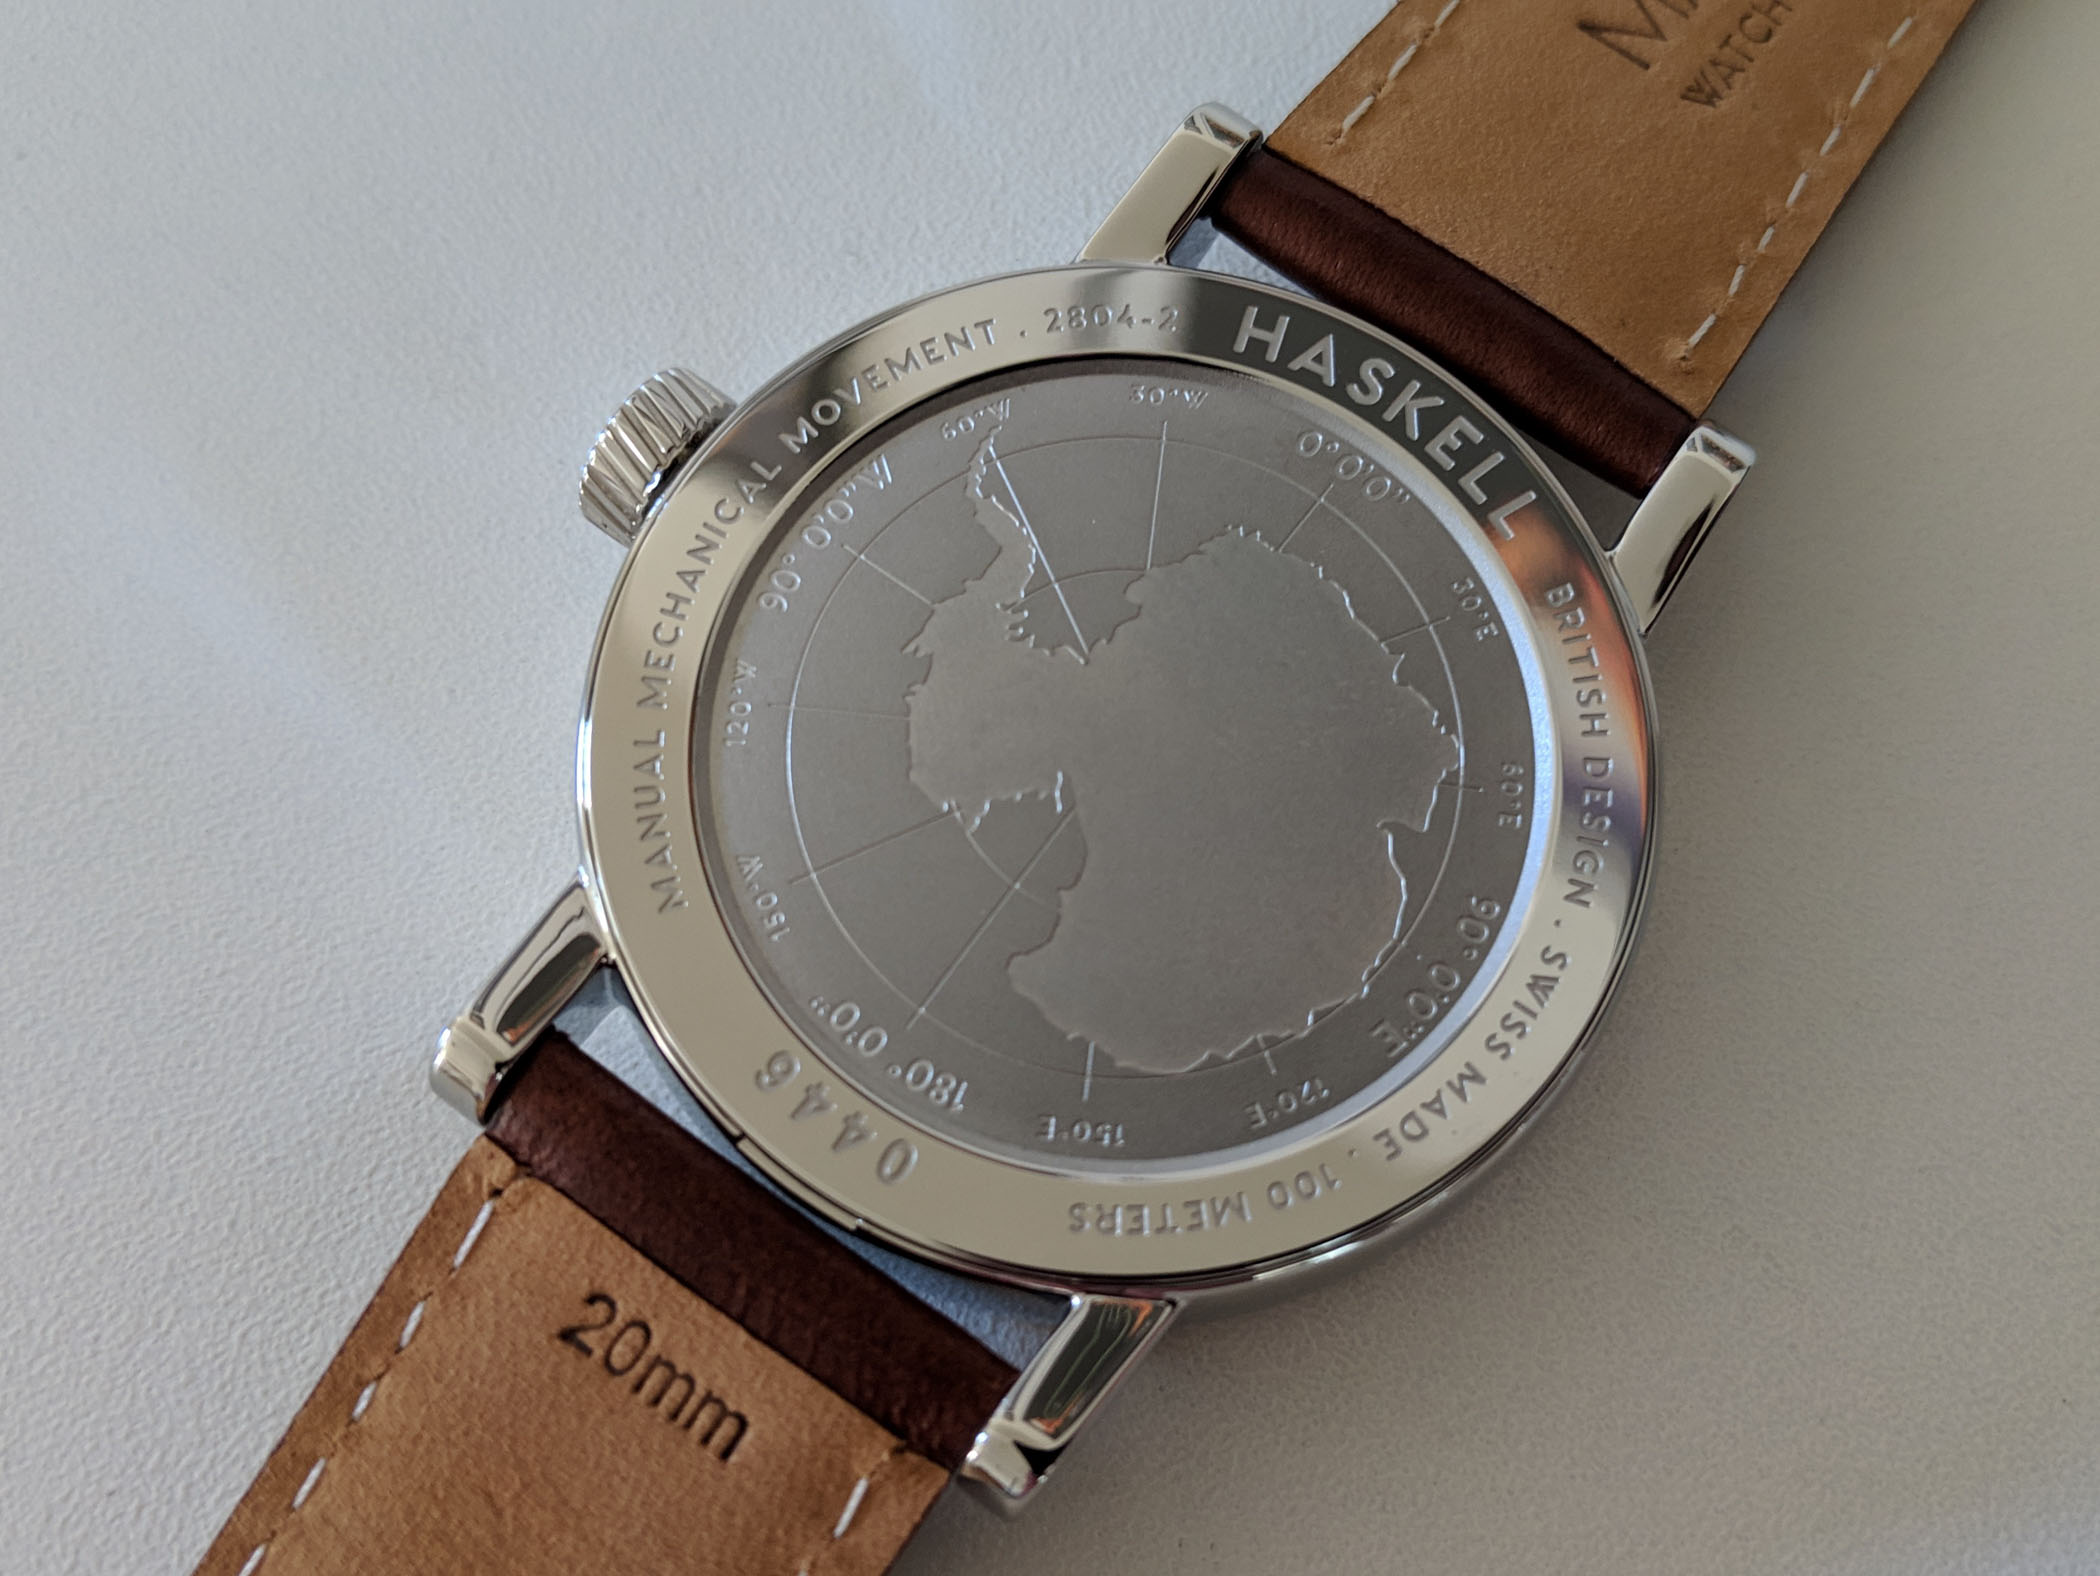 Marloe Watch Company Haskell hand-wound ETA - review - 10